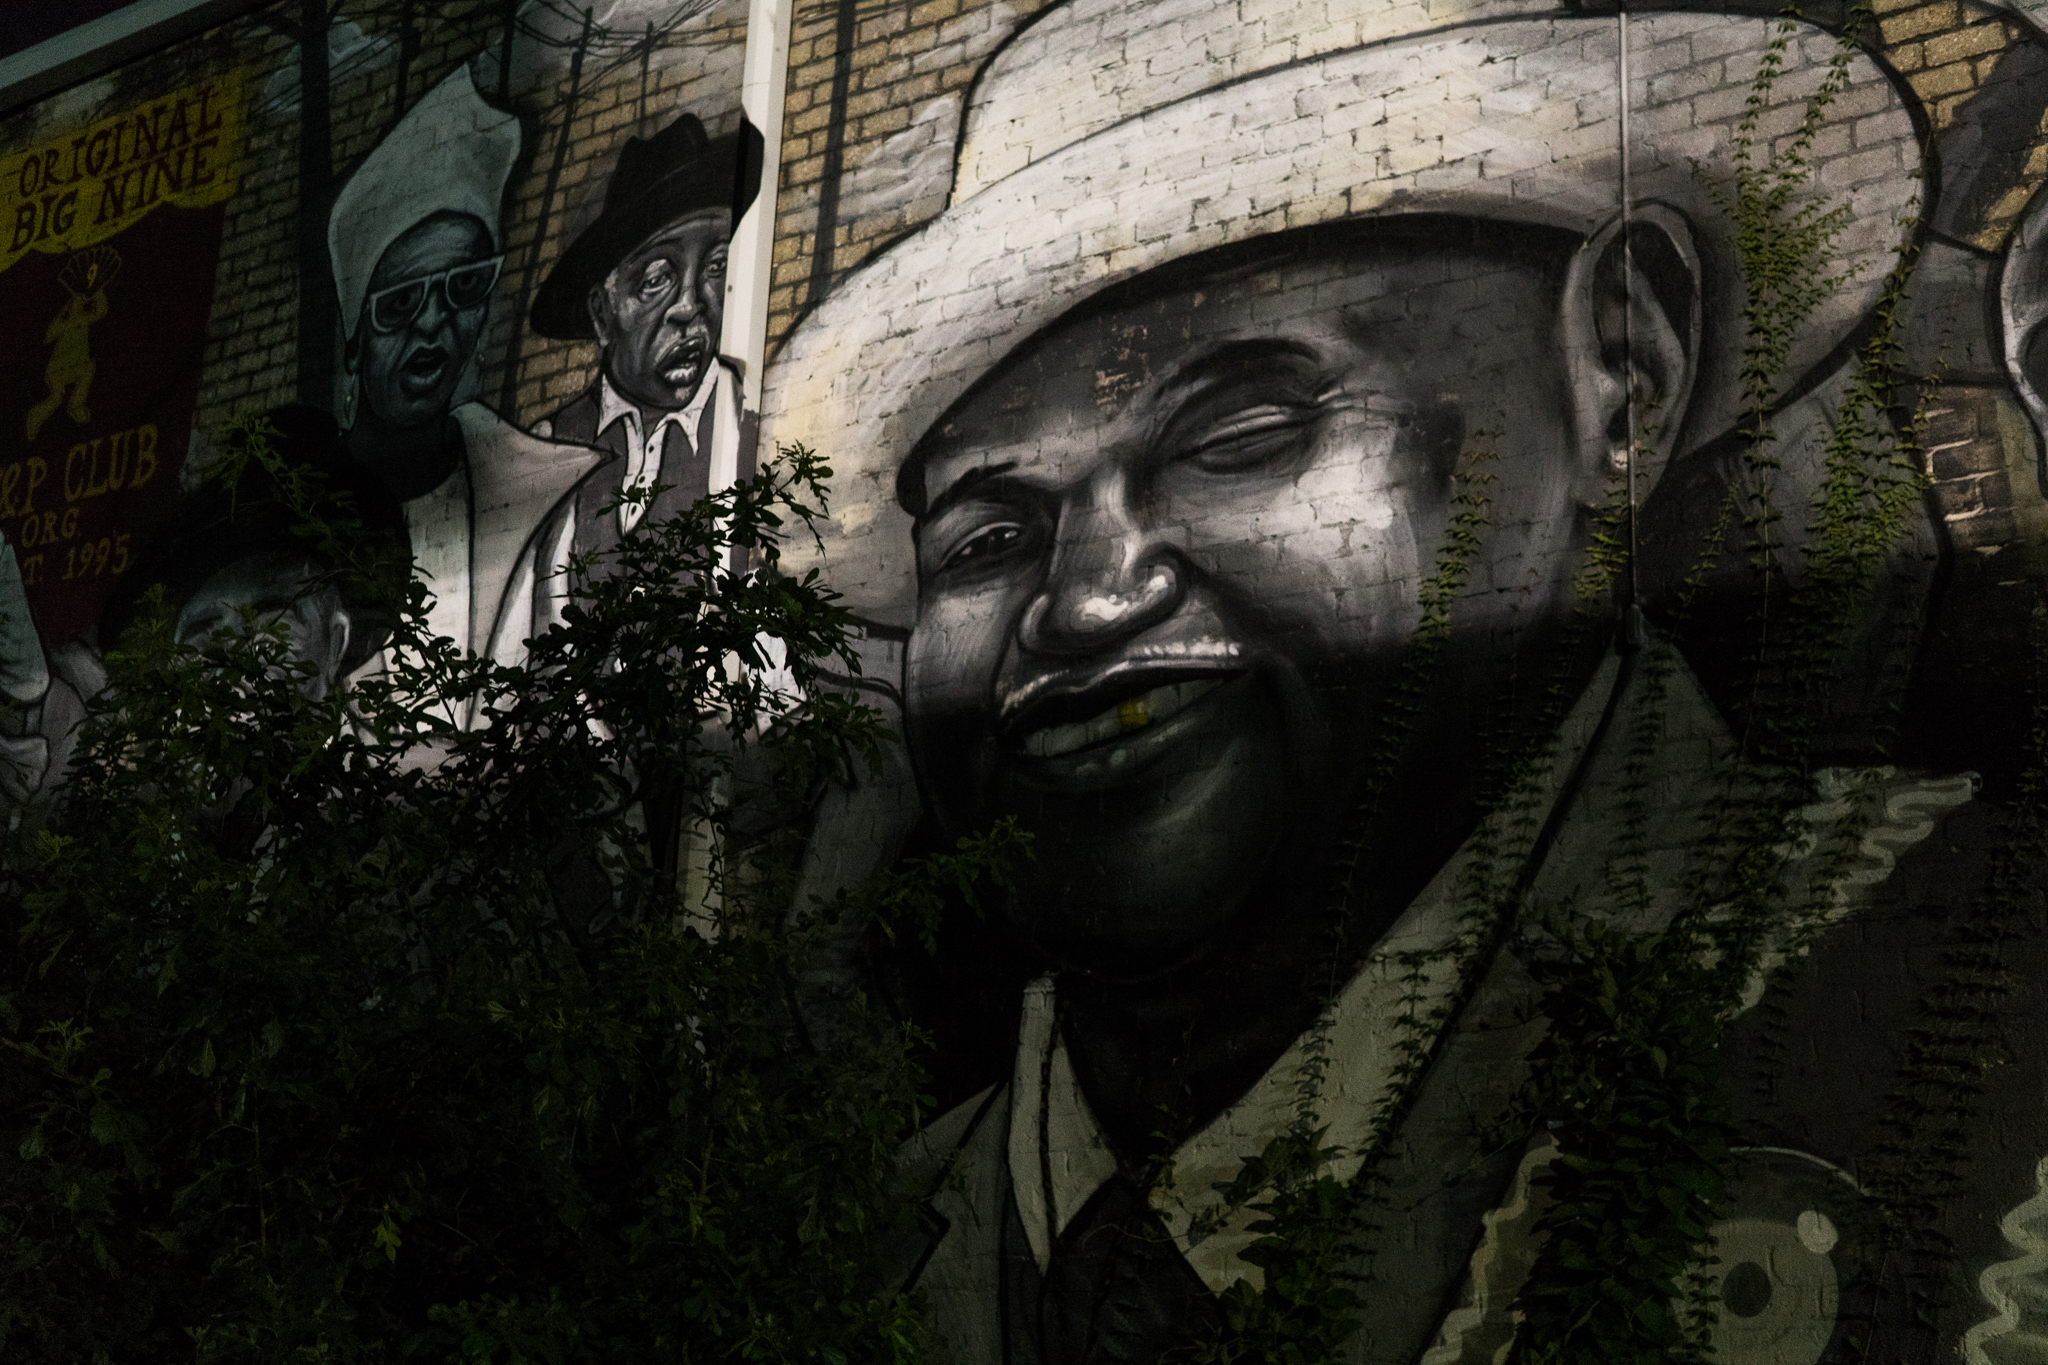 A mural on St. Clause in the Marigny neighborhood of New Orleans.